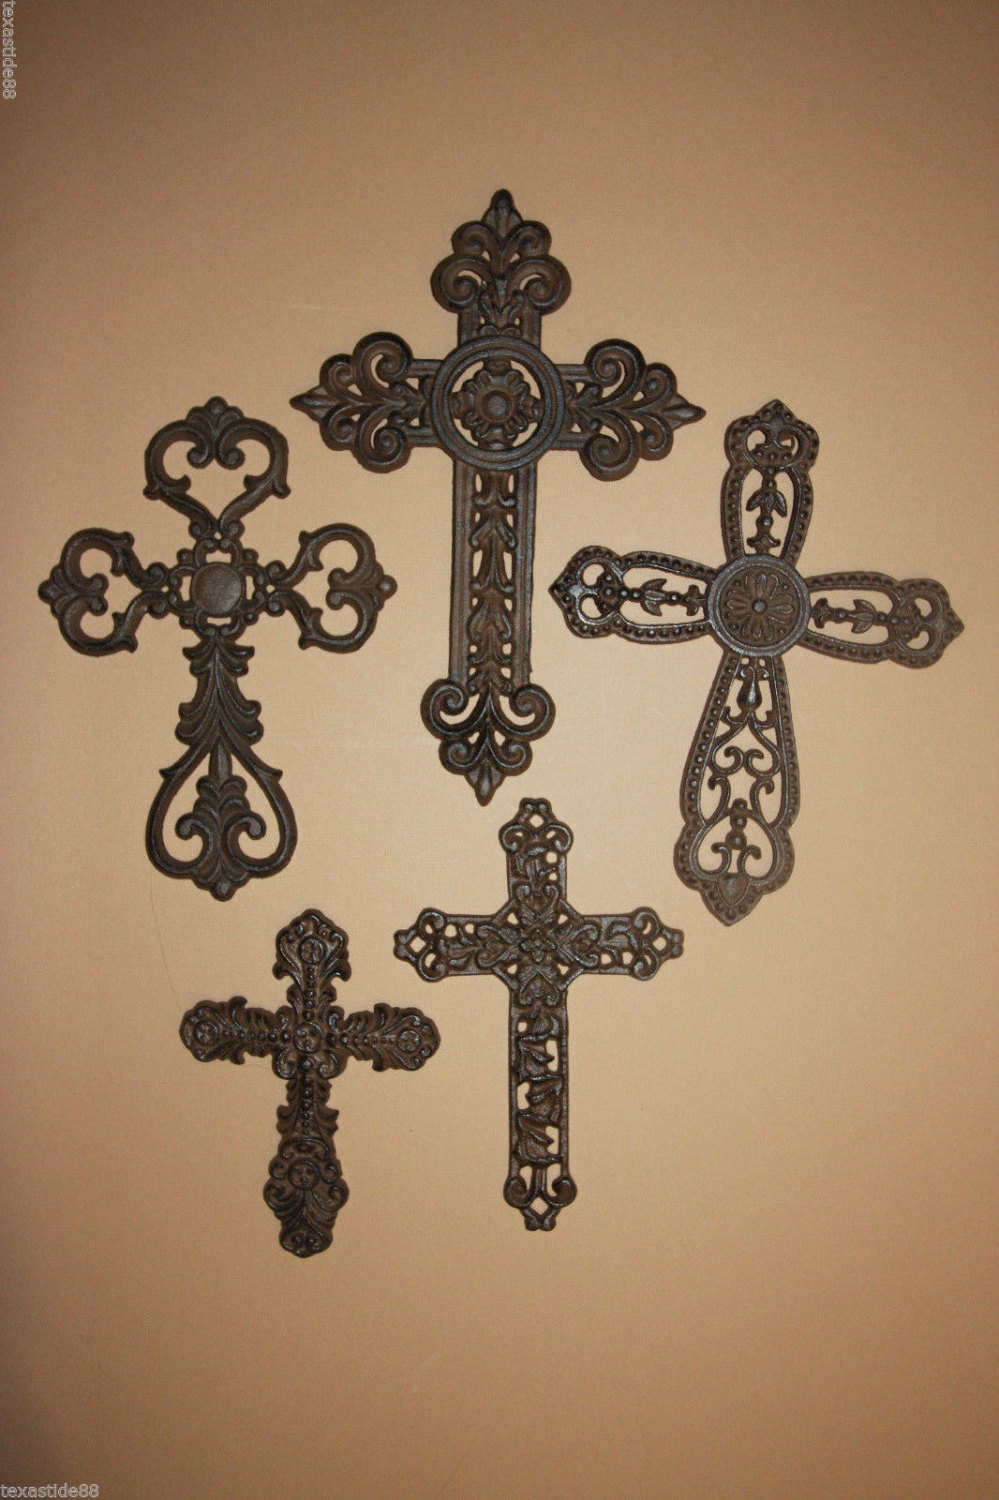 5 Perfect Valentines Day Gift To Decorate The Home With Cast Iron Cross Decor, Ready Paint, Free Ship Rustic Religious Mothers Gift